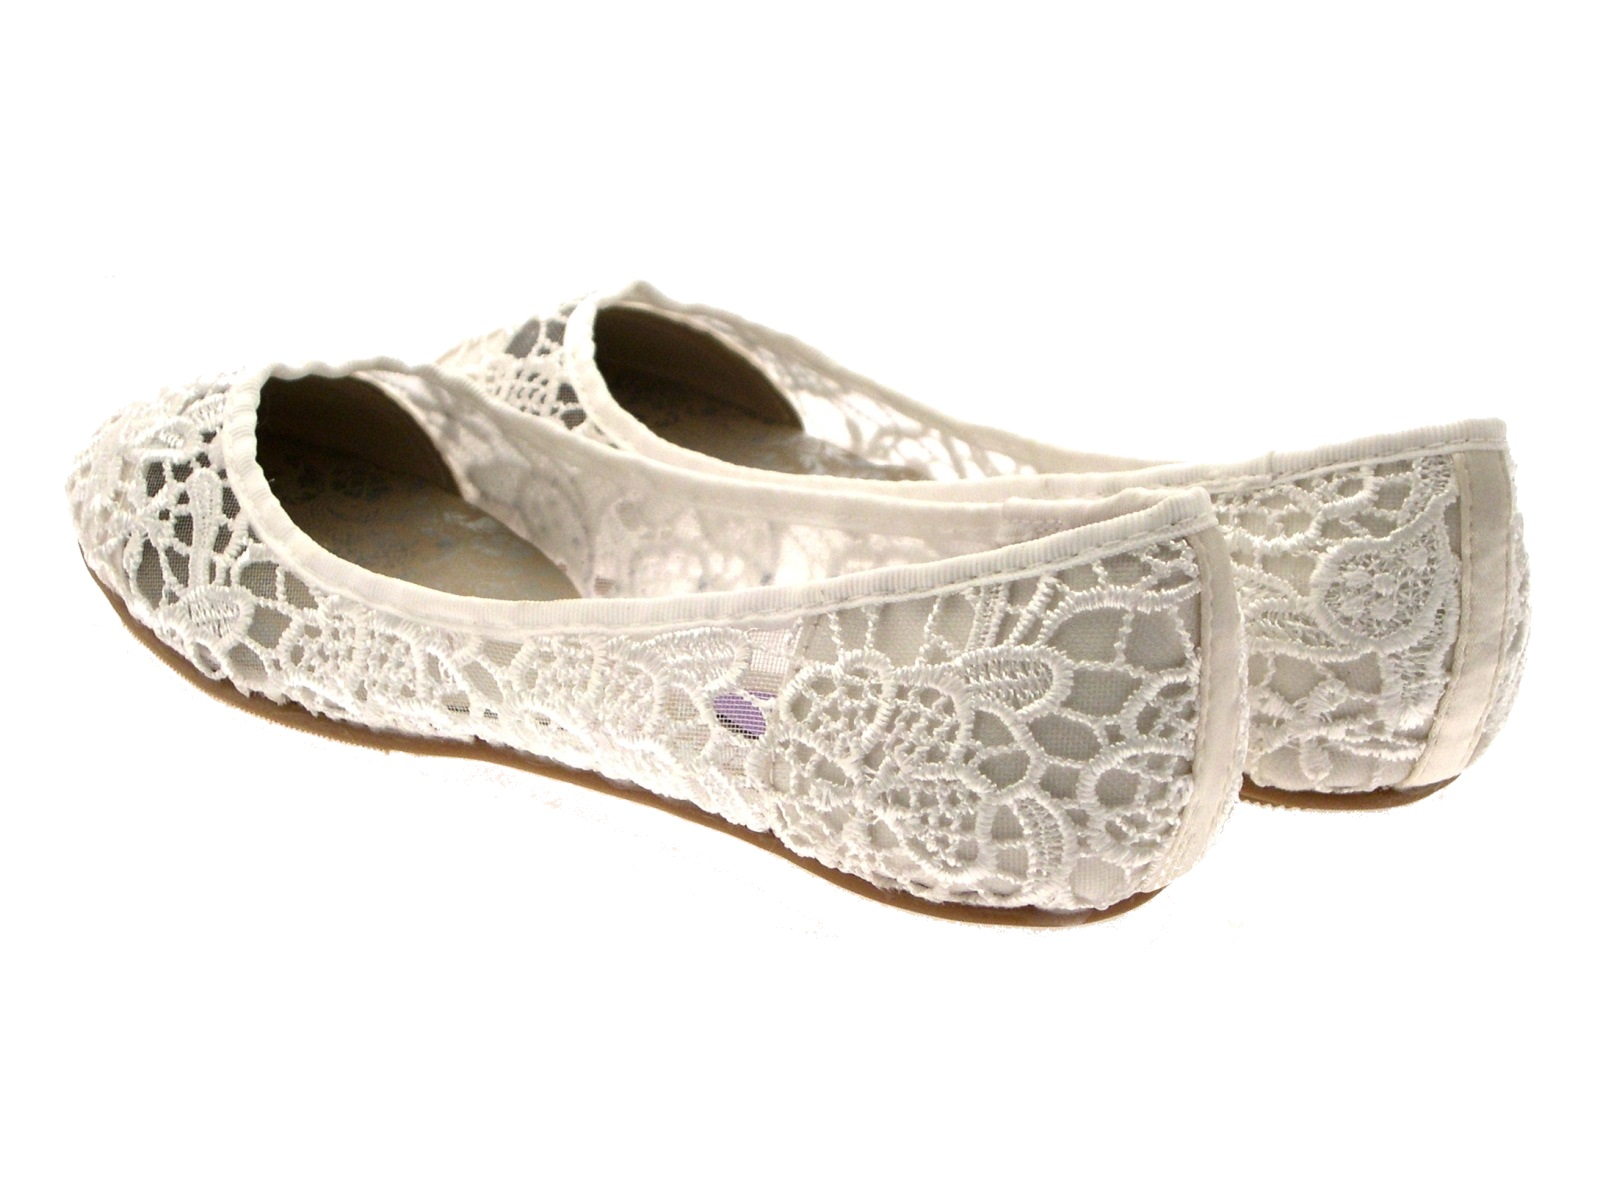 Womens Ivory Lace Ballet Pumps Flat Bridal Bridesmaid Shoes Ladies Size UK 3